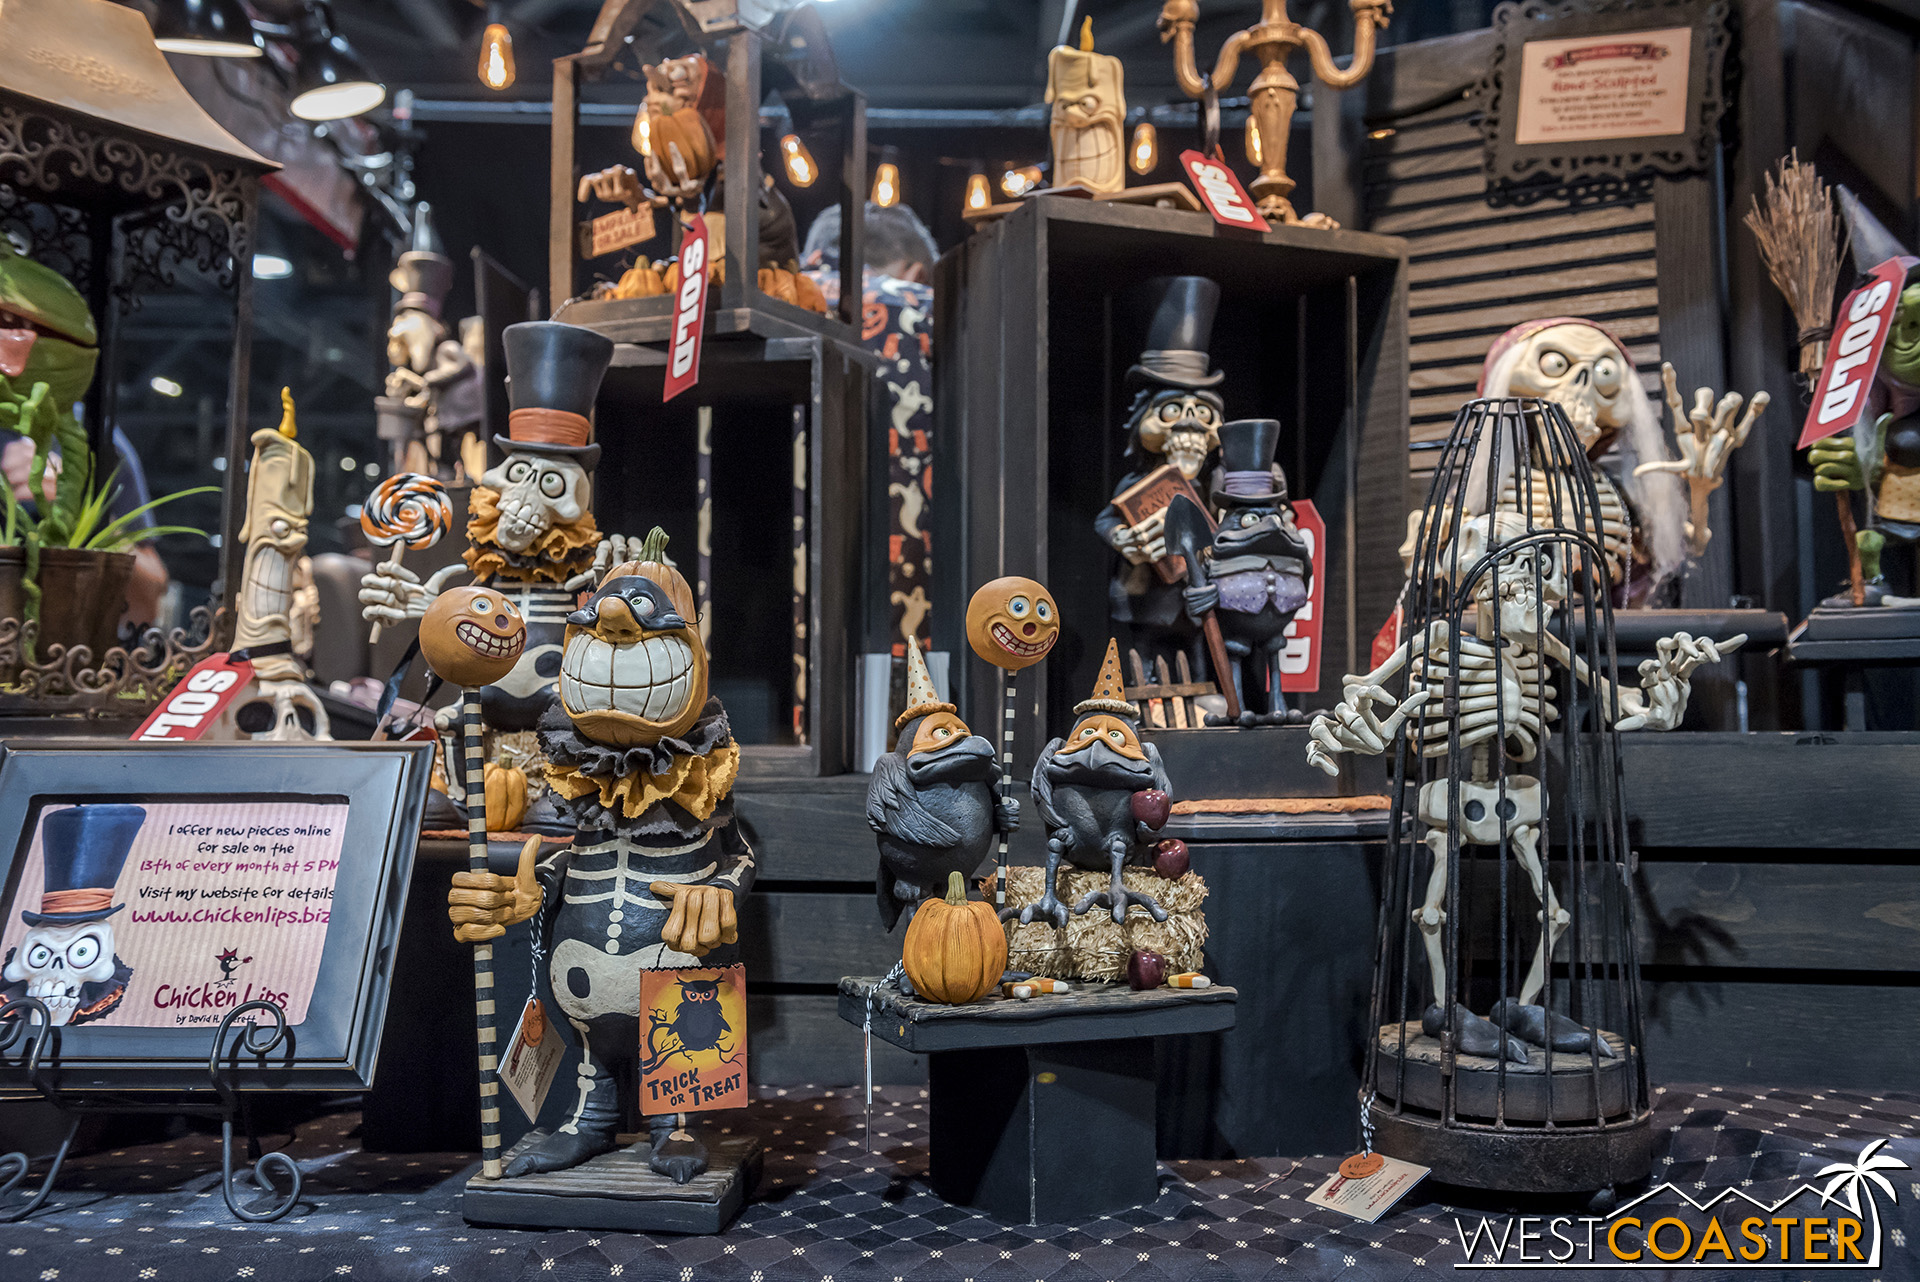 There were so many fun and creative Halloween decorations and theming bits for sale.